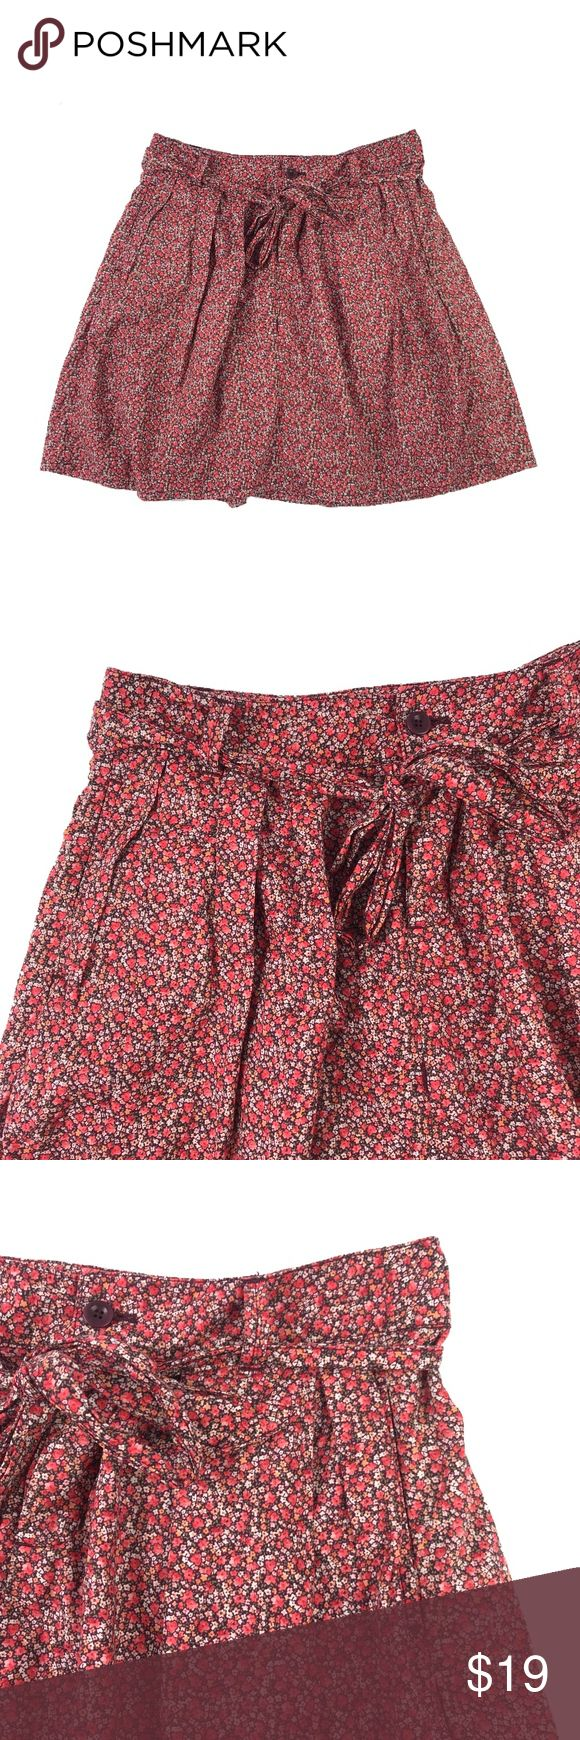 """GAP Bright Floral Waist-Tie Bow Belt Lined Skirt Excellent condition, no flaws. Bow-tie belt at waist.   Size: 0 Materials: shell and lining - 100% cotton  Waist, across waistband, doubled: 29"""" Hip, 6-8"""" below waistband, doubled: 36"""" Length, waist to hem: 17.5"""" GAP Skirts A-Line or Full"""